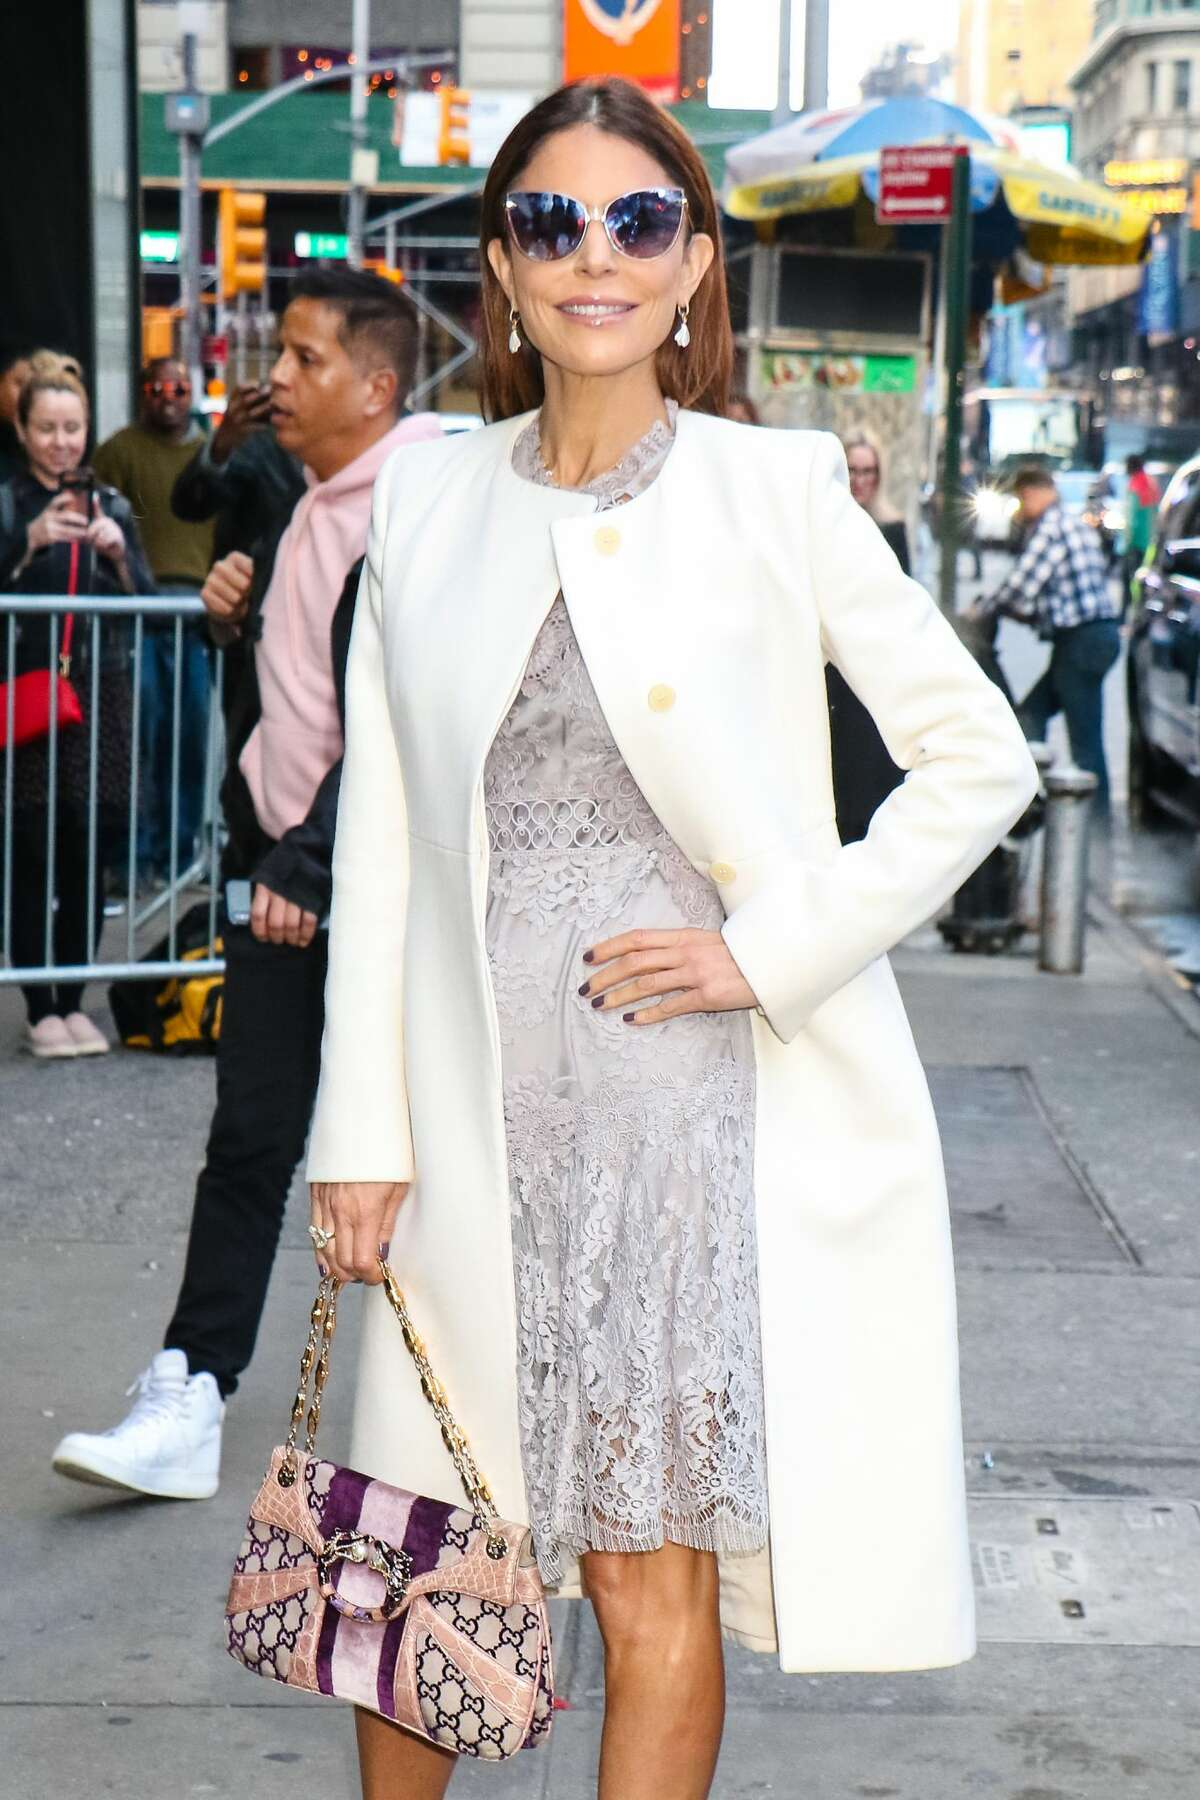 NEW YORK, NY - NOVEMBER 11: Bethenny Frankel is seen on November 11, 2019 in New York City. (Photo by MediaPunch/Bauer-Griffin/GC Images)